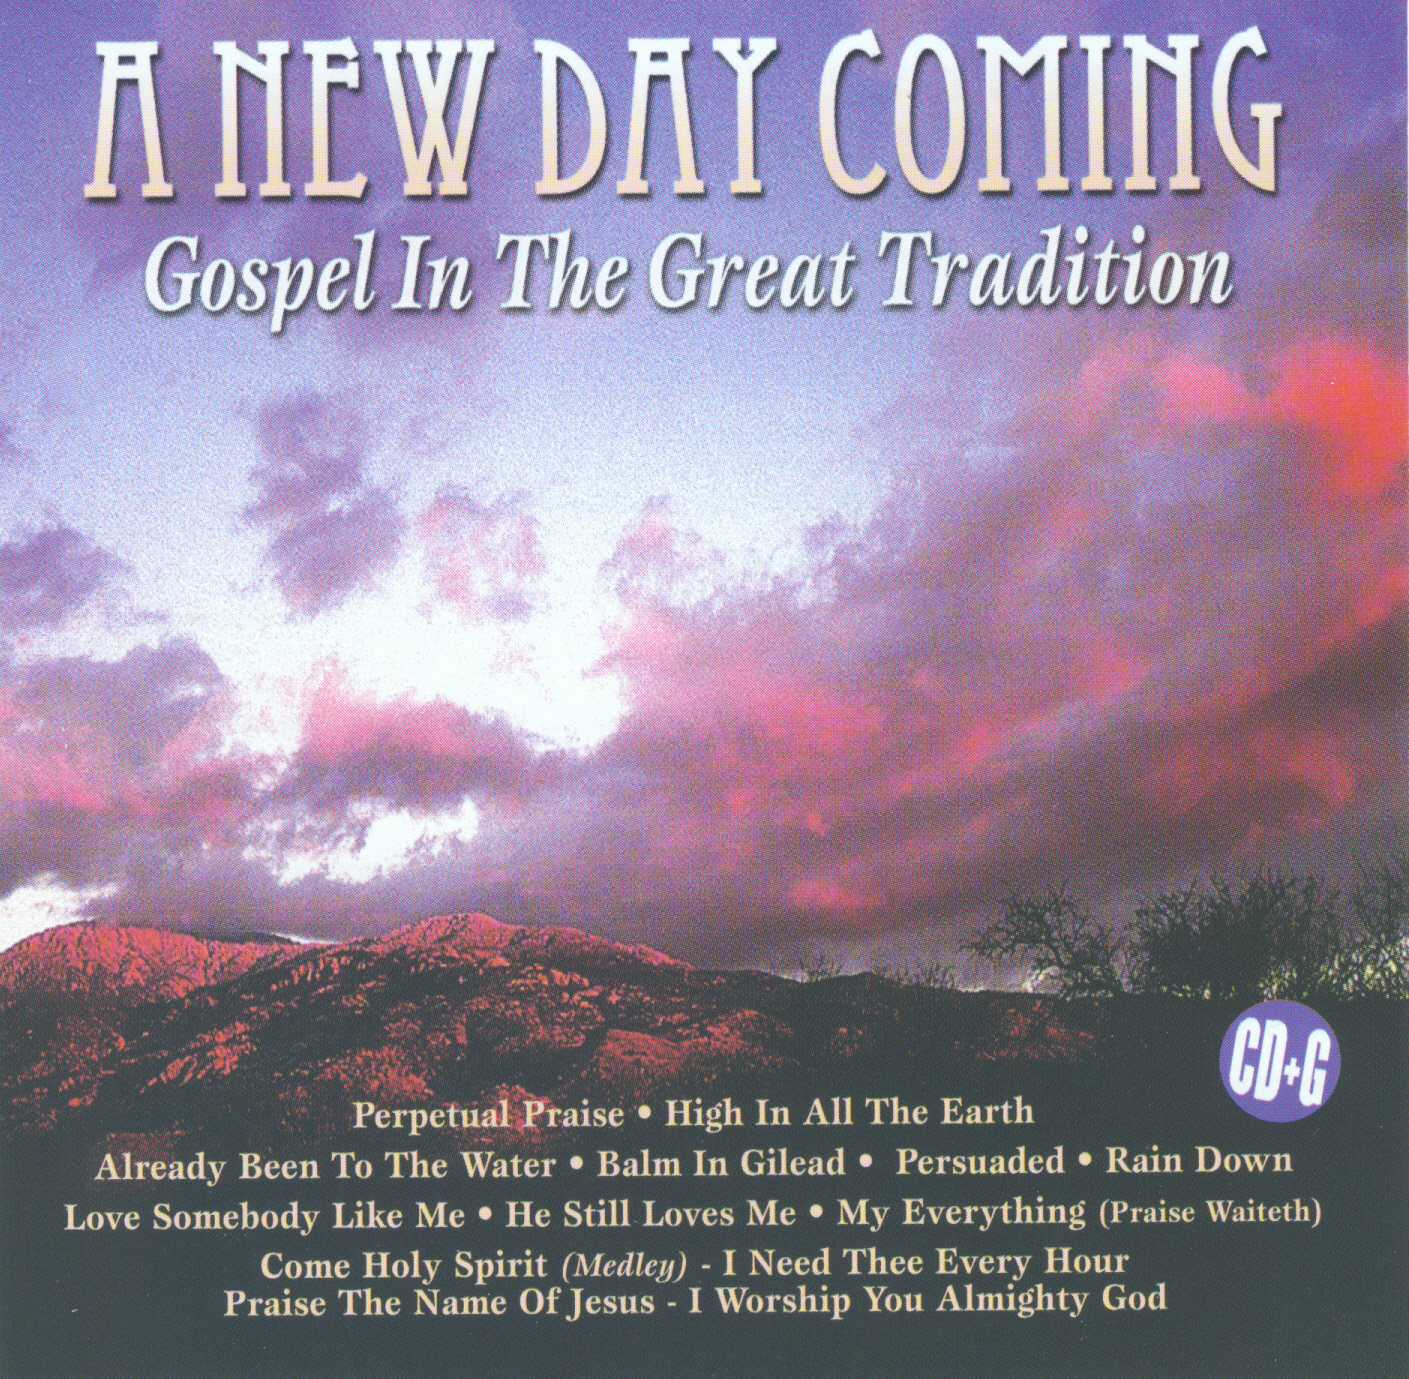 A NEW DAY COMING GREAT TRADITION GOSPEL   Pocket Songs JTG 339